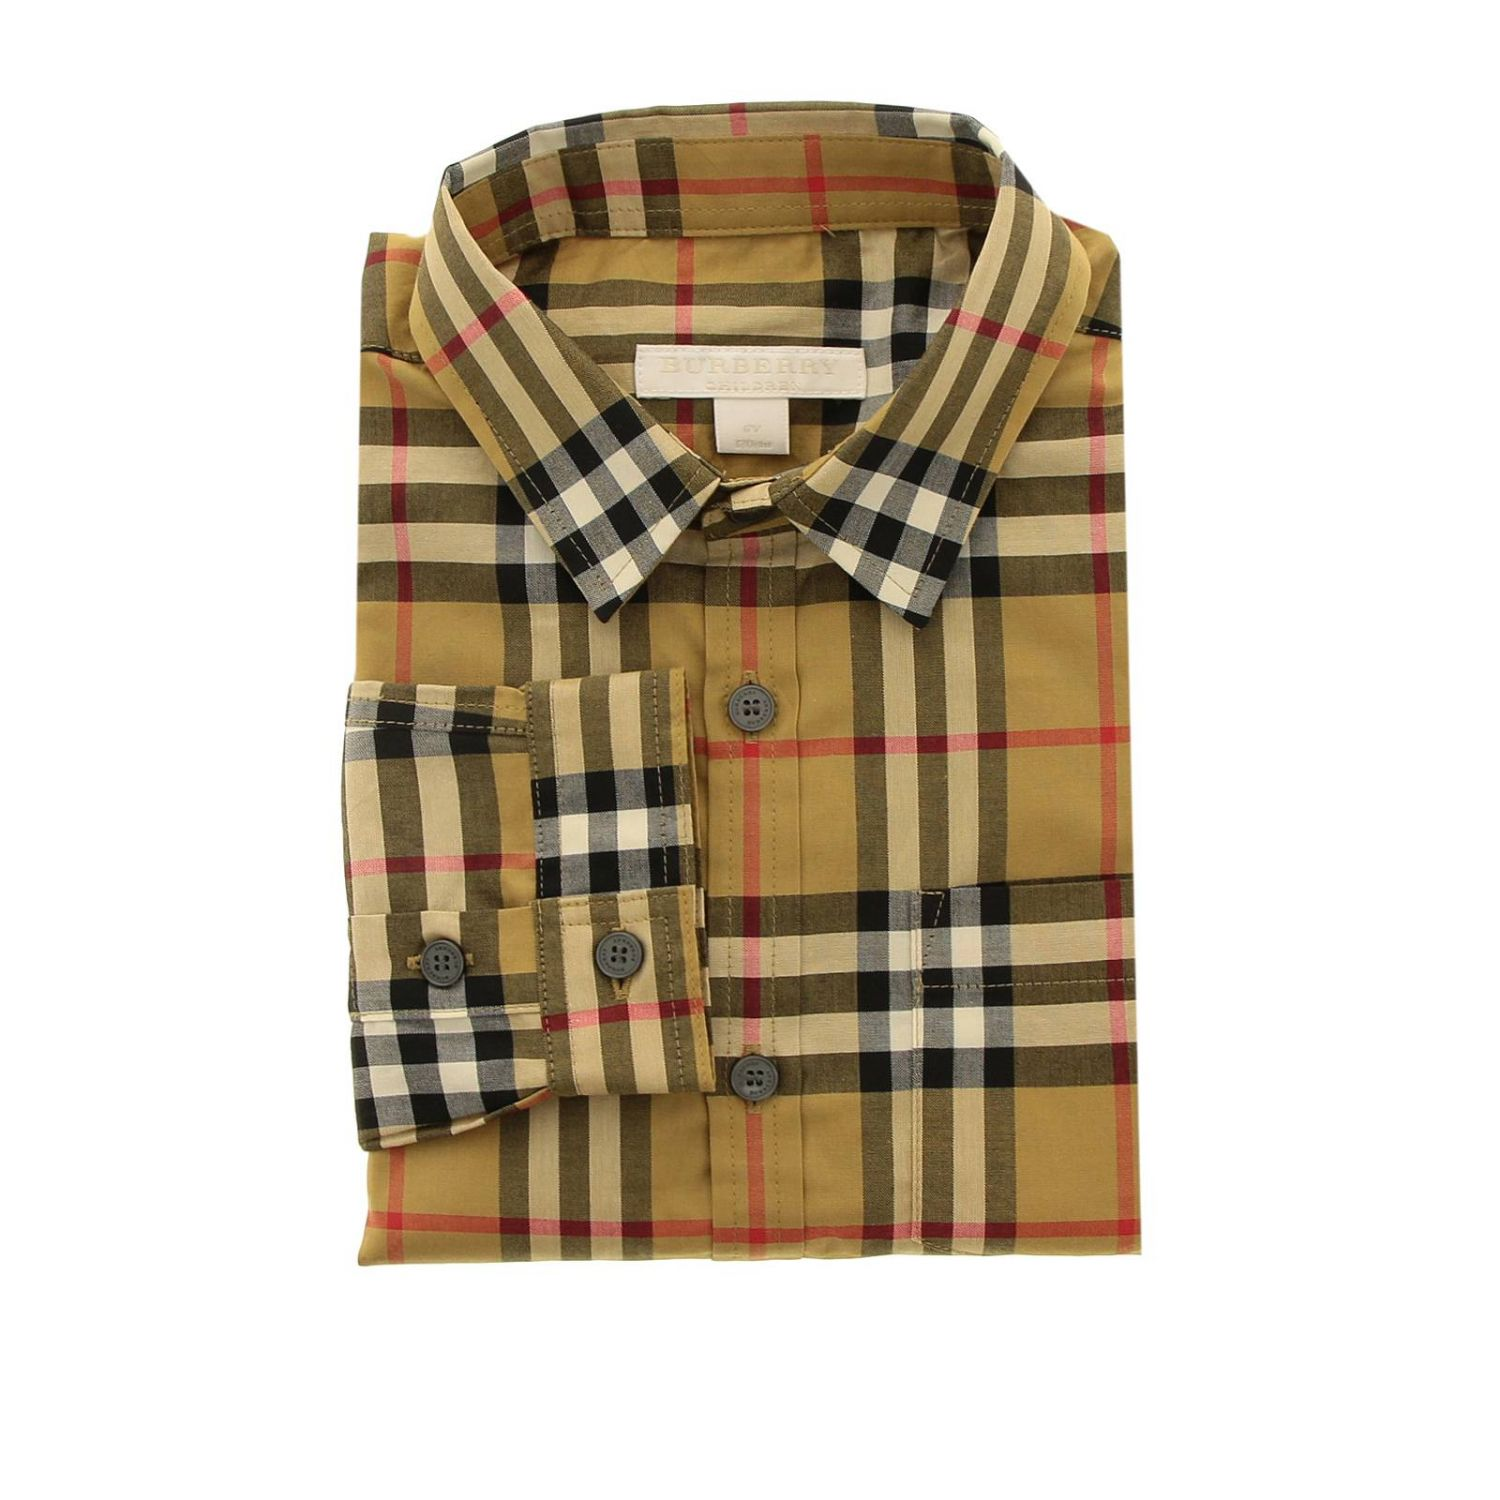 Shirt Shirt Kids Burberry